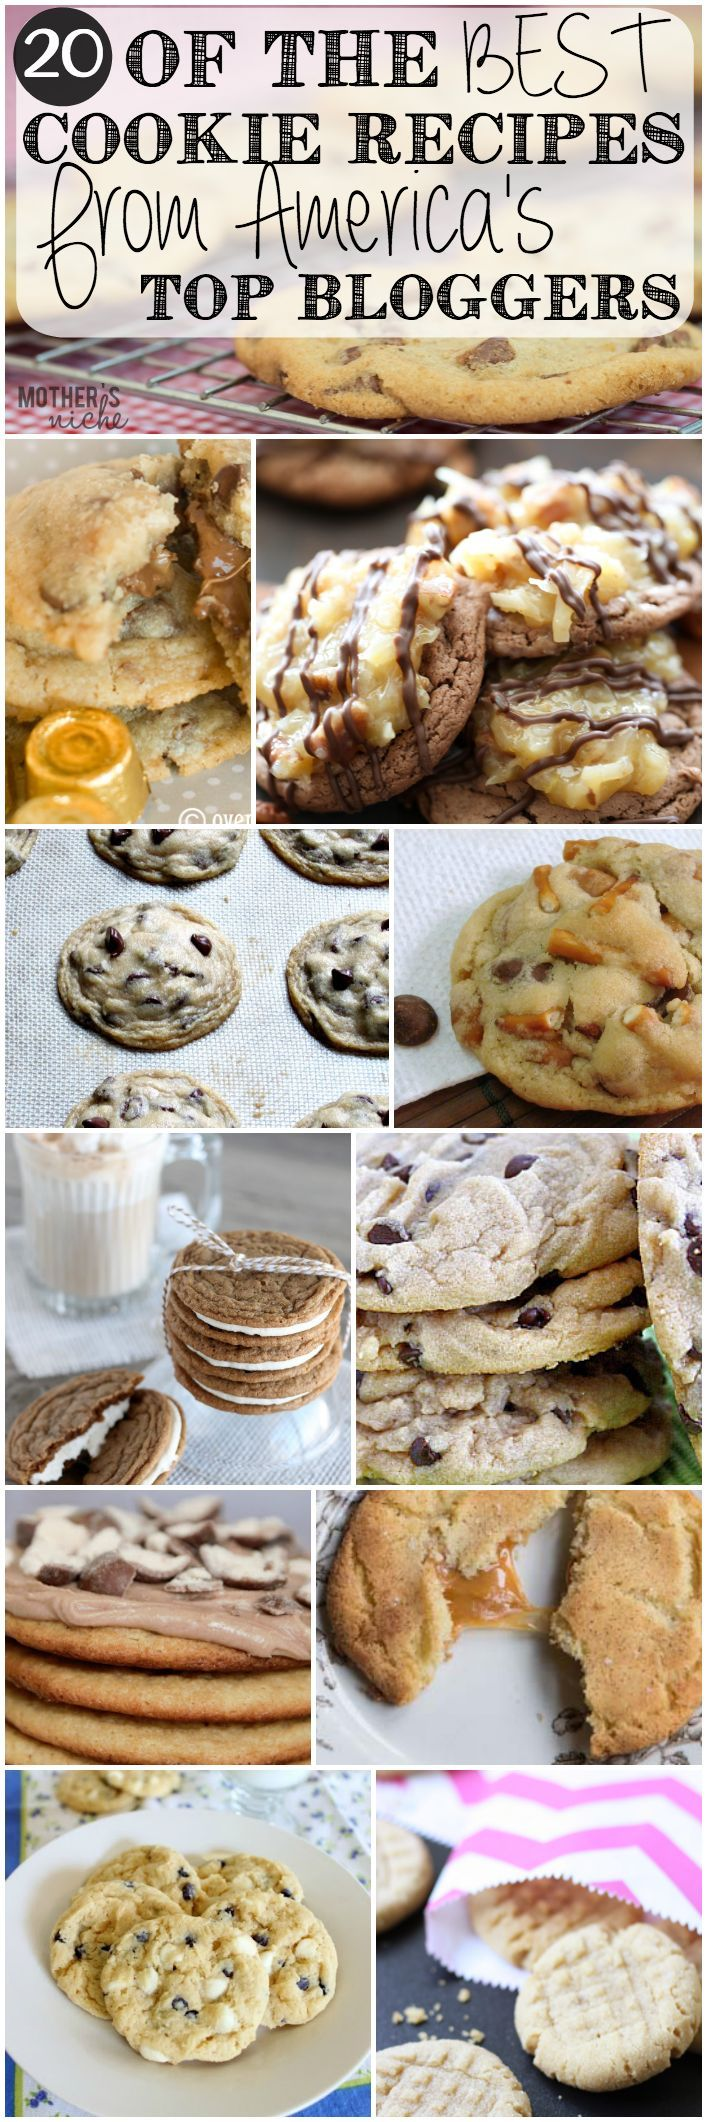 20 of the BEST Cookie Recipes on the Web - Double the Batch